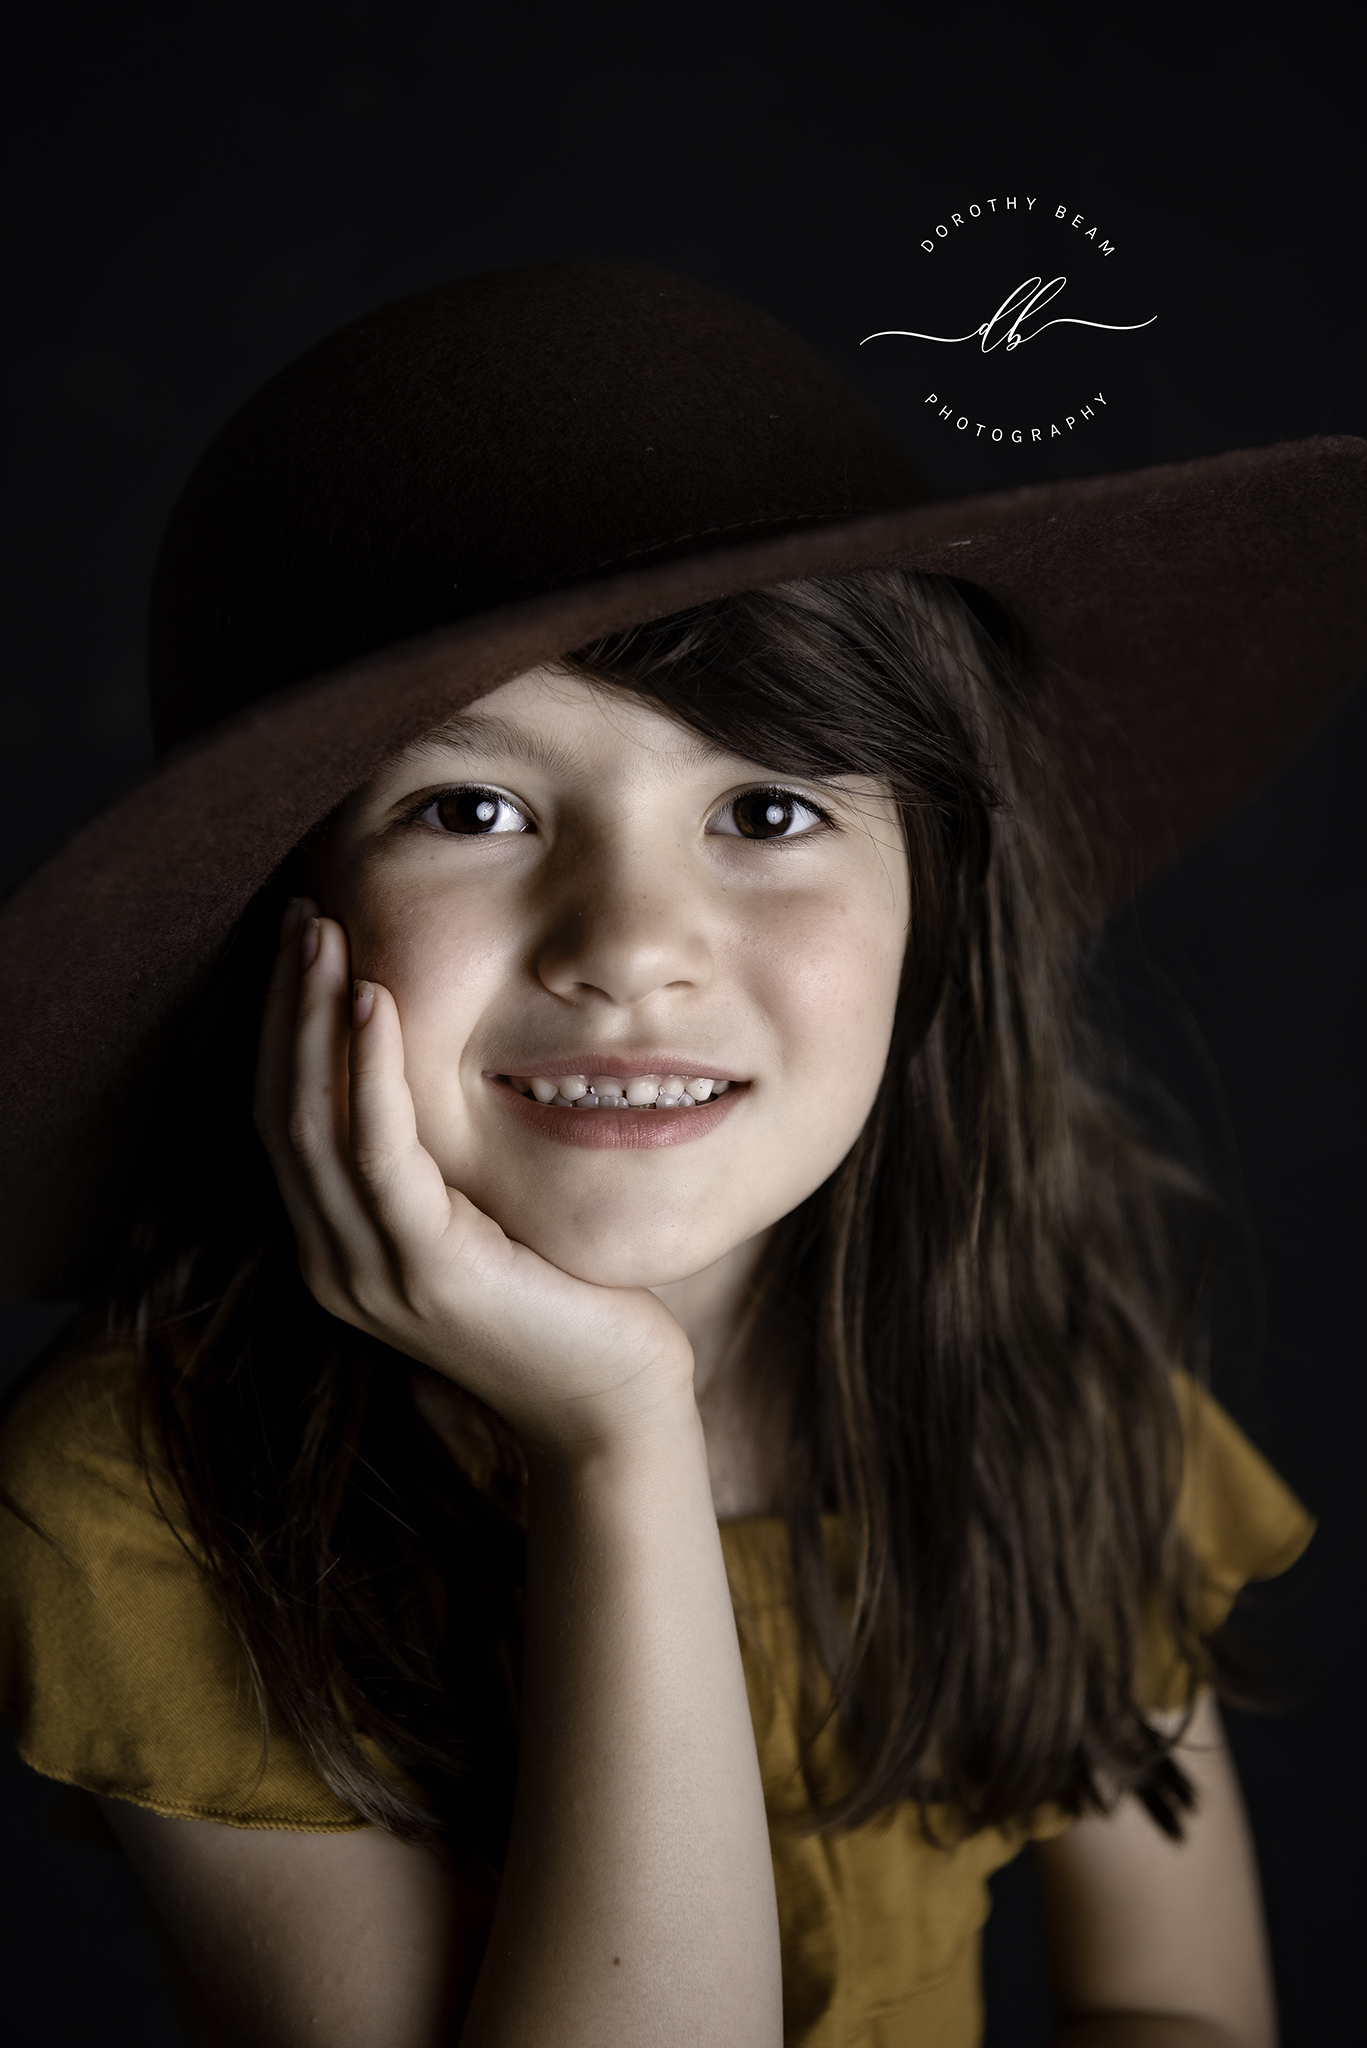 Girl Black Brown Hat Hand on Face Close